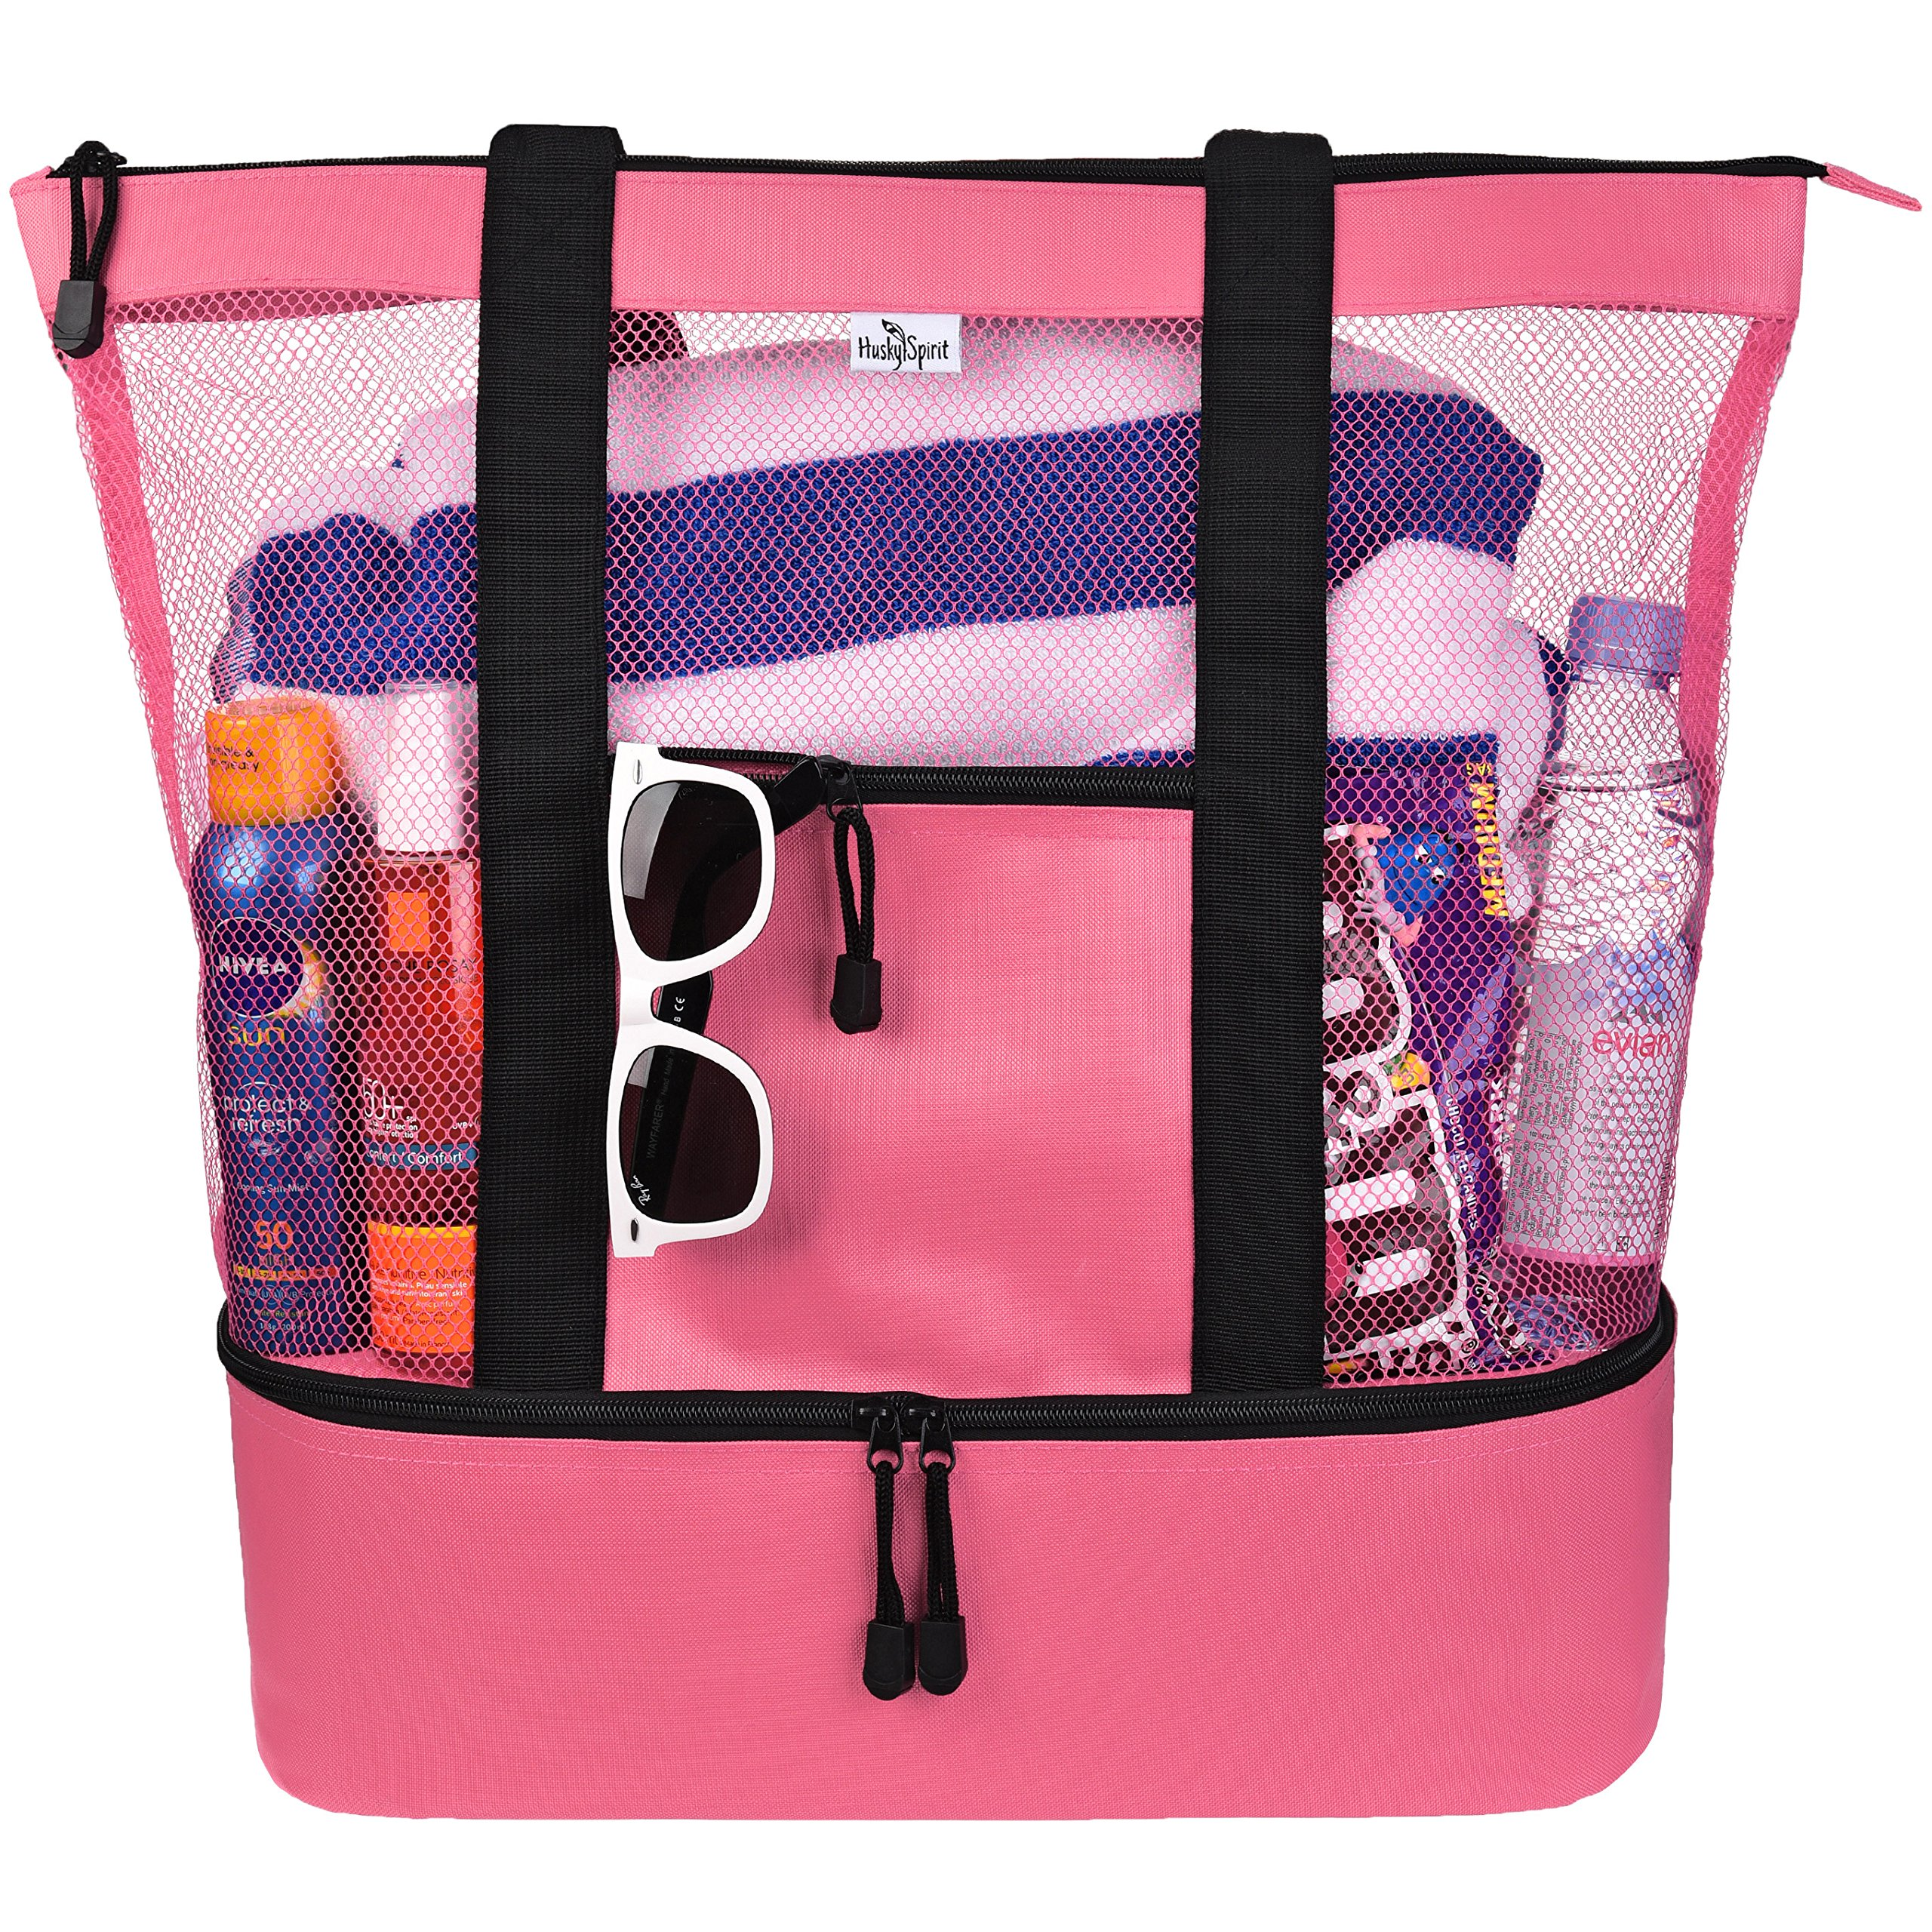 Get Quotations Mesh Beach Tote Bag For Women W Insulated Picnic Cooler And Top Zipper Large